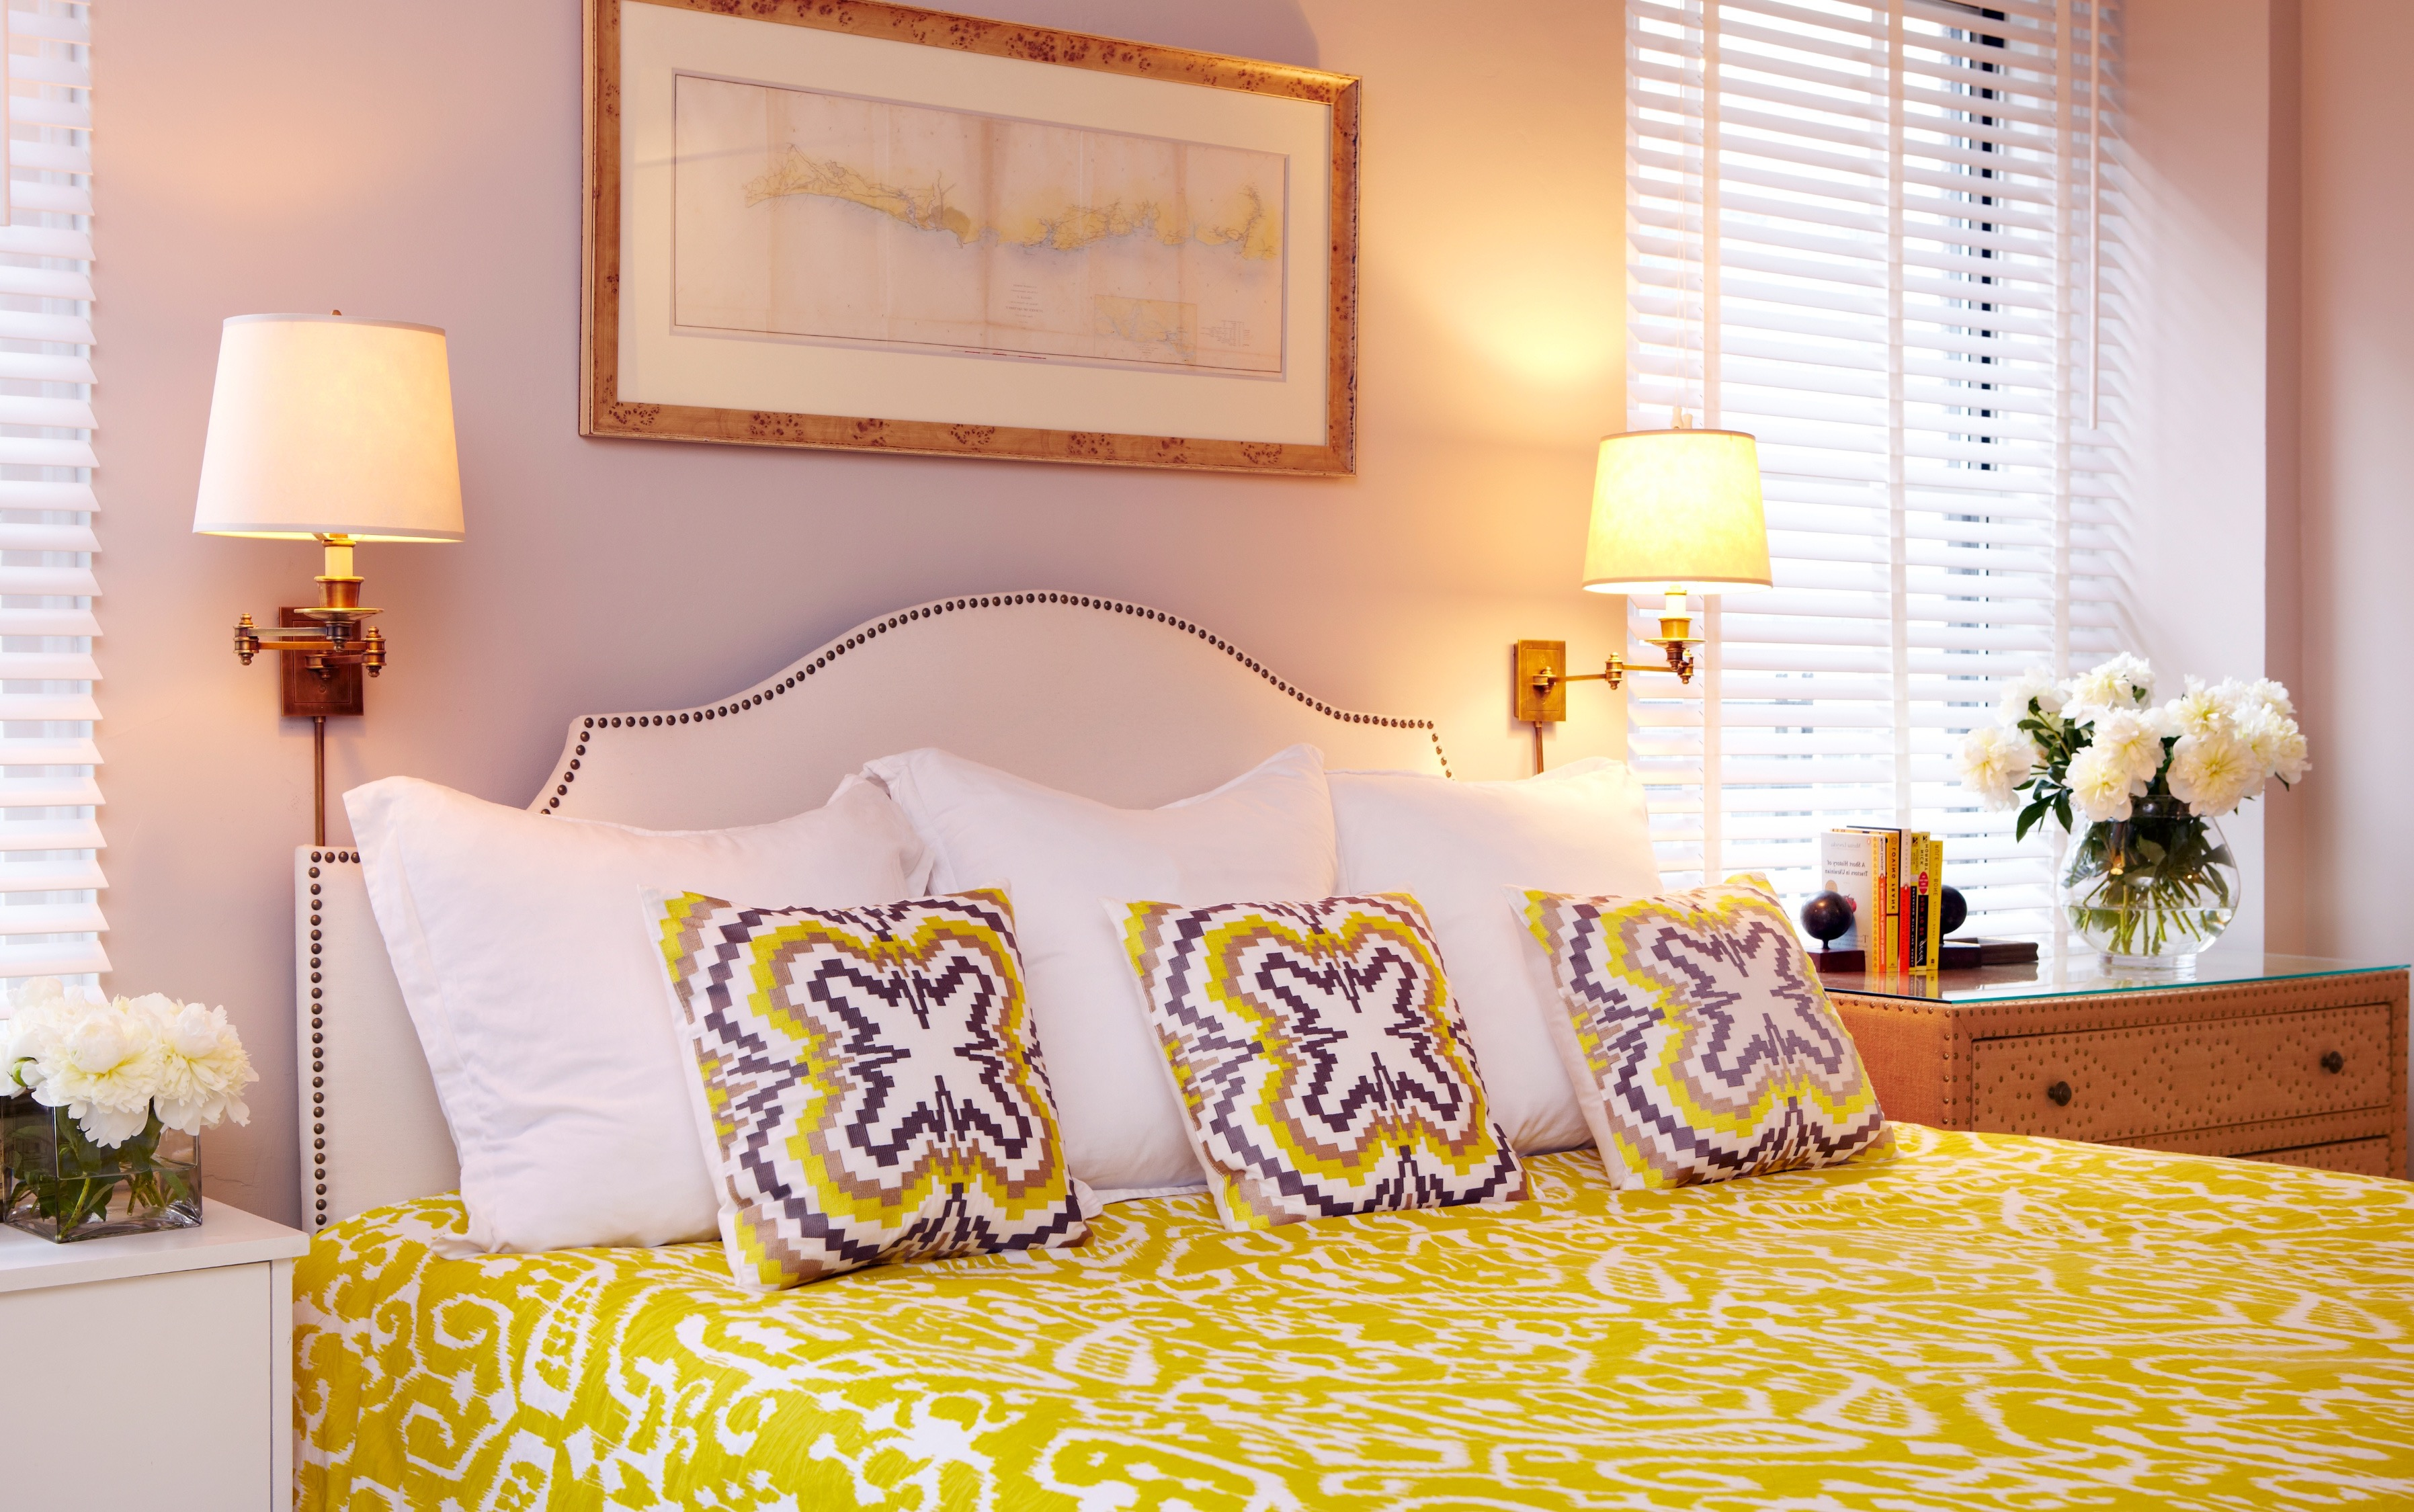 Modern Lighting For Hotel Like Bedroom With Vibrant Yellow Bedding (View 22 of 25)